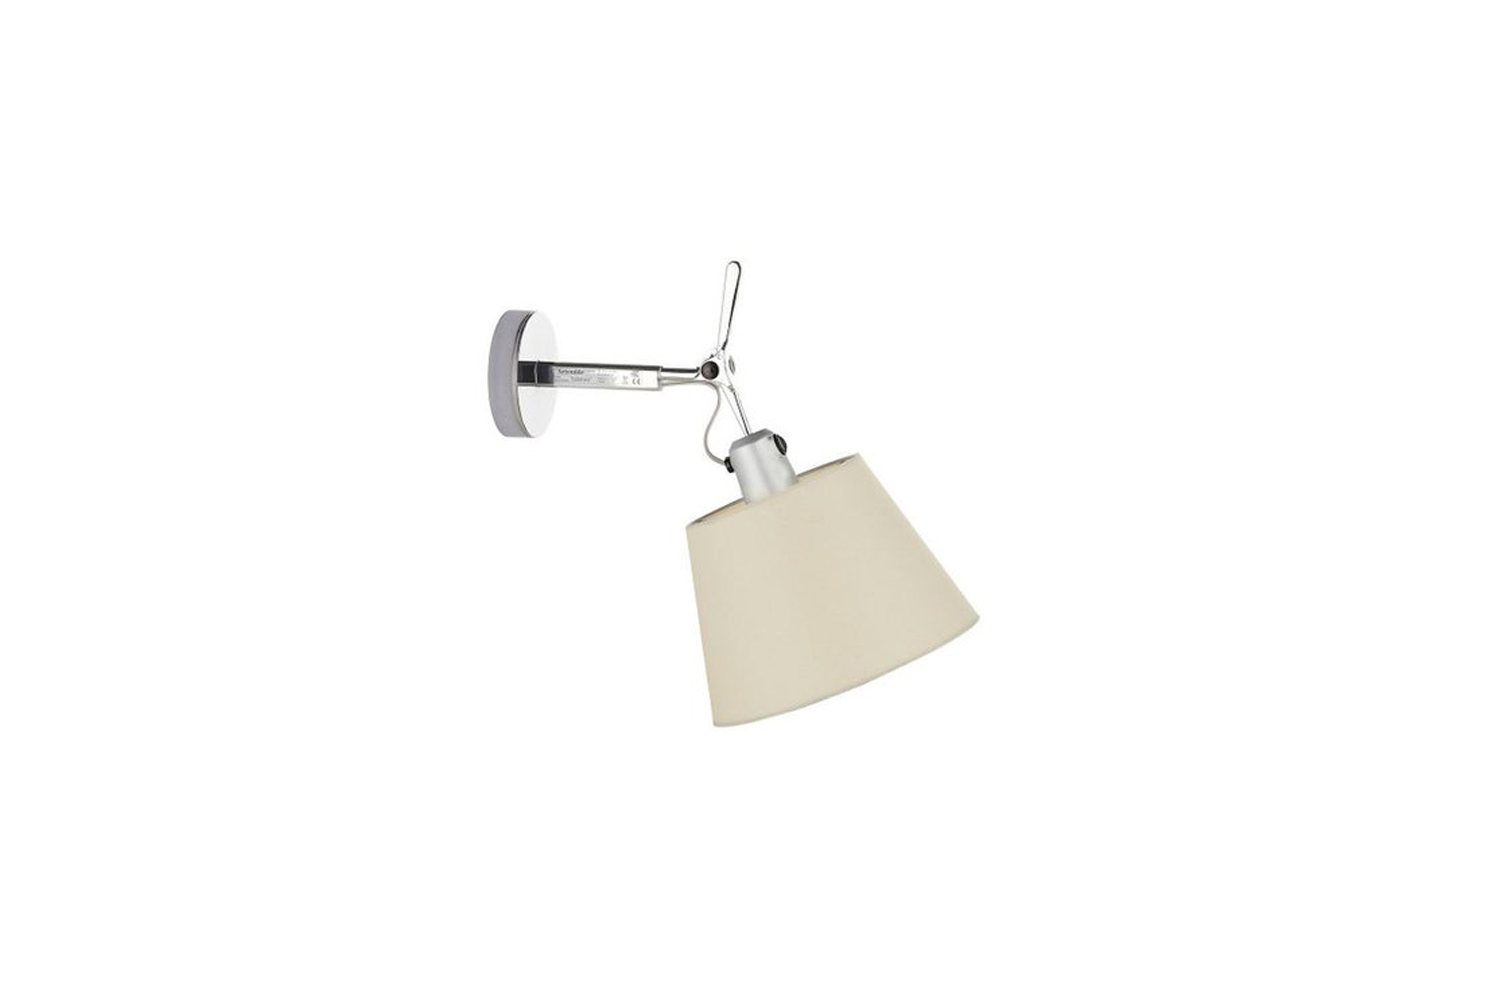 10 Easy Pieces Classic Modern Bath Sconces The classic Tolomeo Wall Shade Sconce is \$4\20 to \$490 at Lumens.